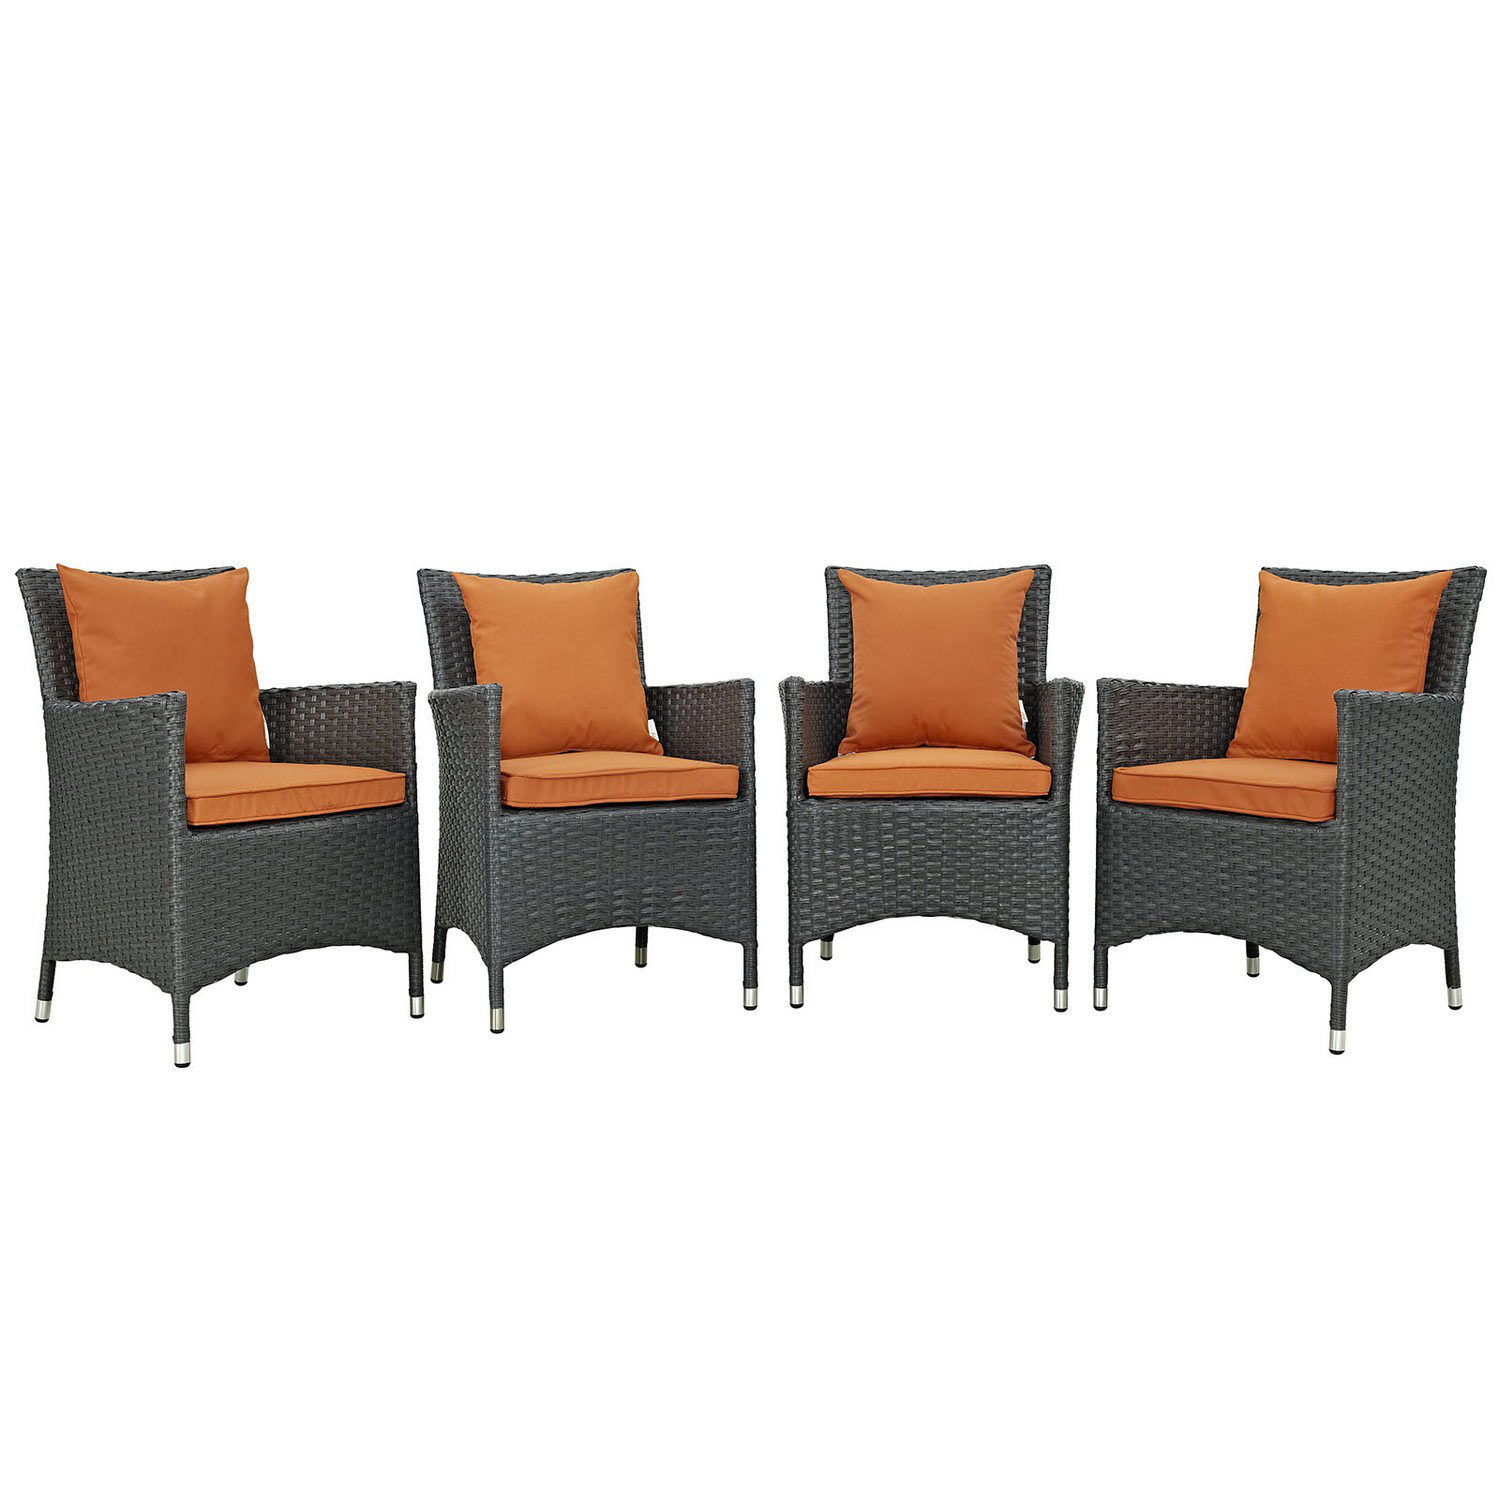 Modway Sojourn 4 Piece Outdoor Patio Sunbrella Dining Set - Canvas Tuscan